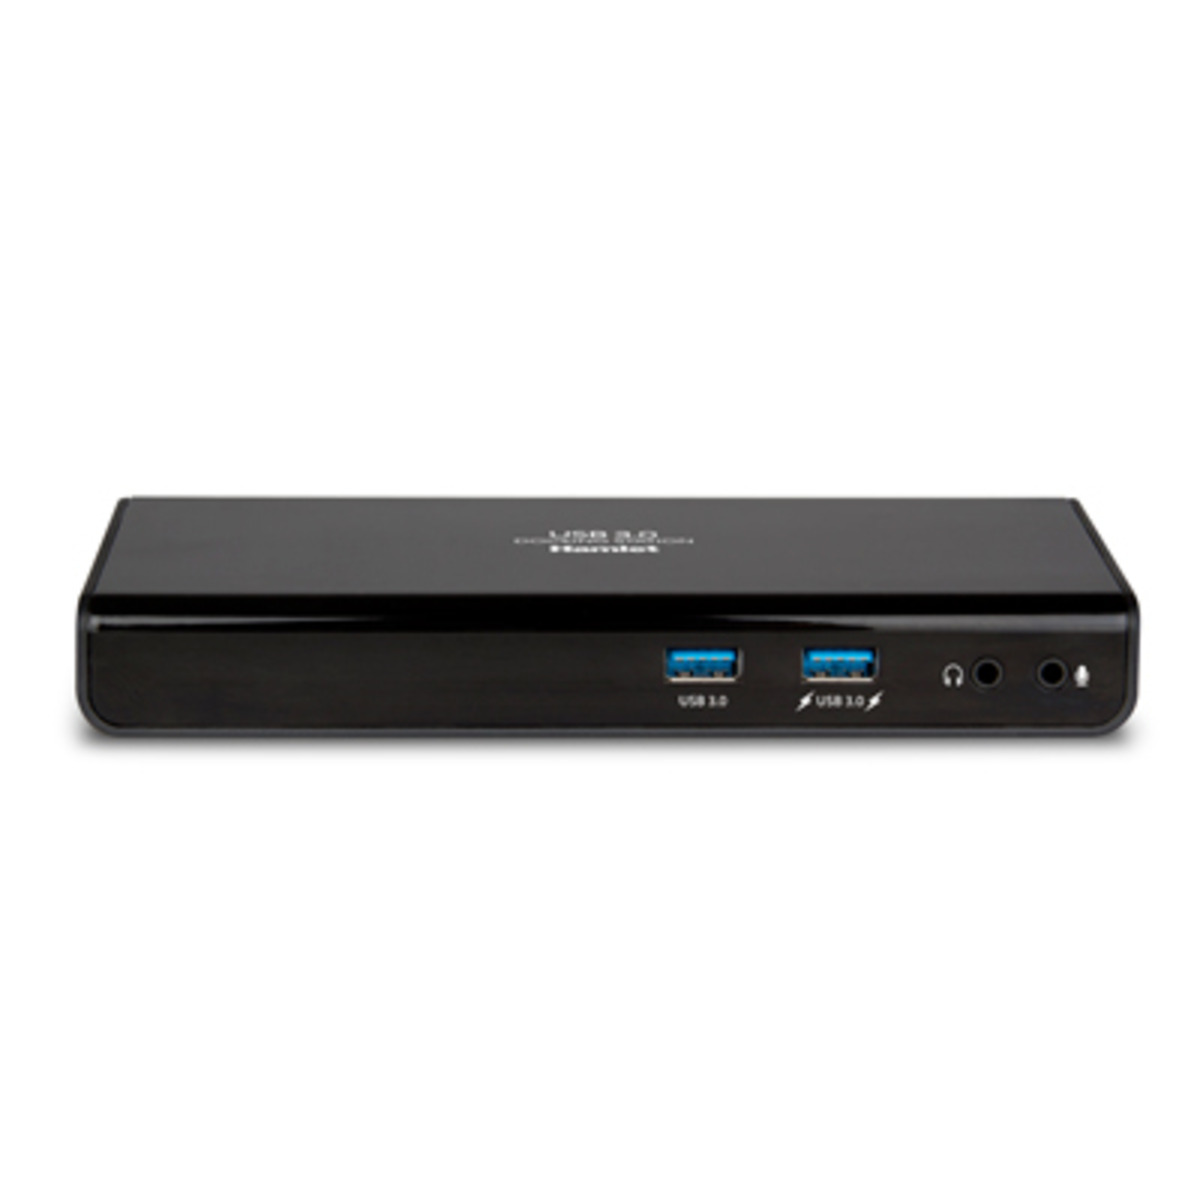 8000130592446-hamlet-docking-station-usb-3-0-dual-display-doppia-connessione-usb-3-0-type-a-e